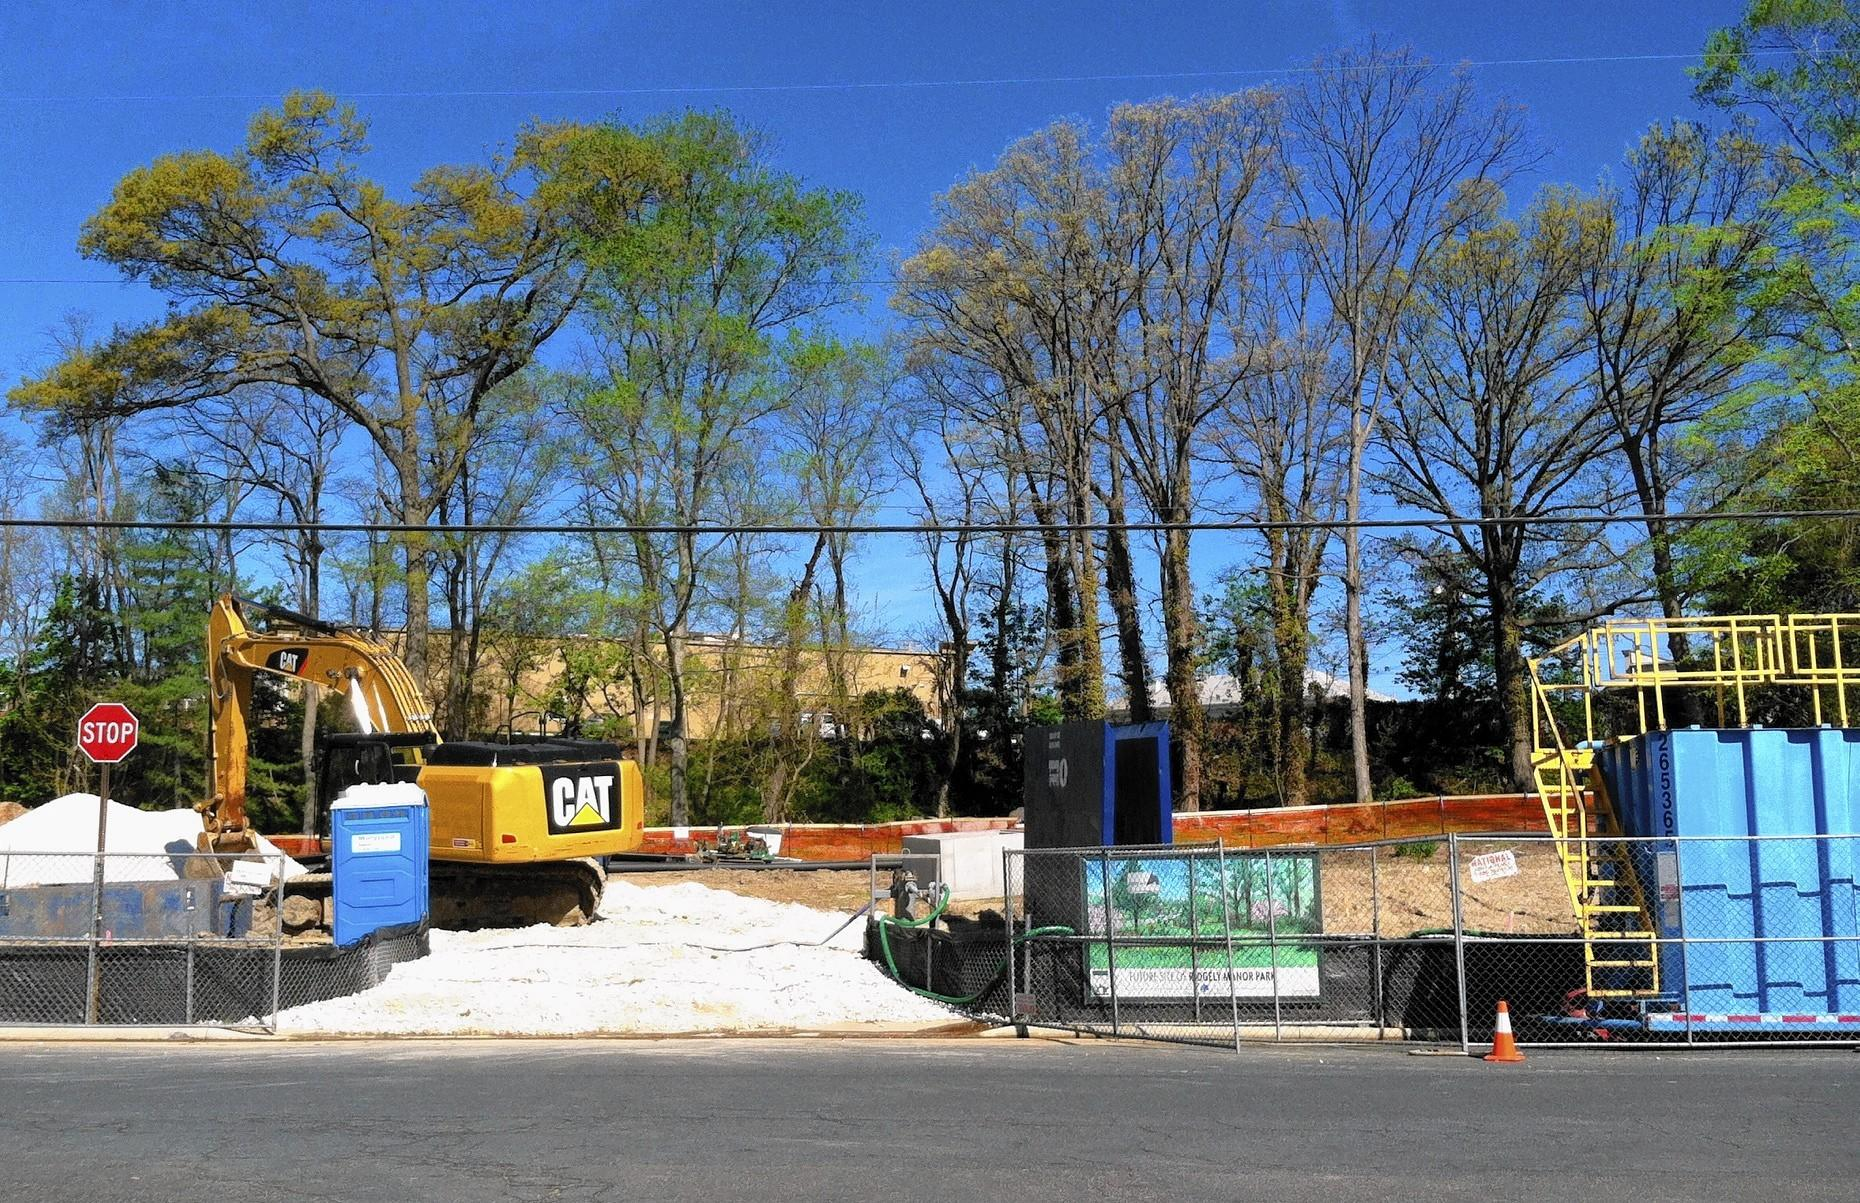 A groundbreaking was held May 3 for Ridgely Manor Park in Towson where greenspace will replace eight homes purchased by Hess Corp. and razed a year ago after an underground gasoline leak was discovered.